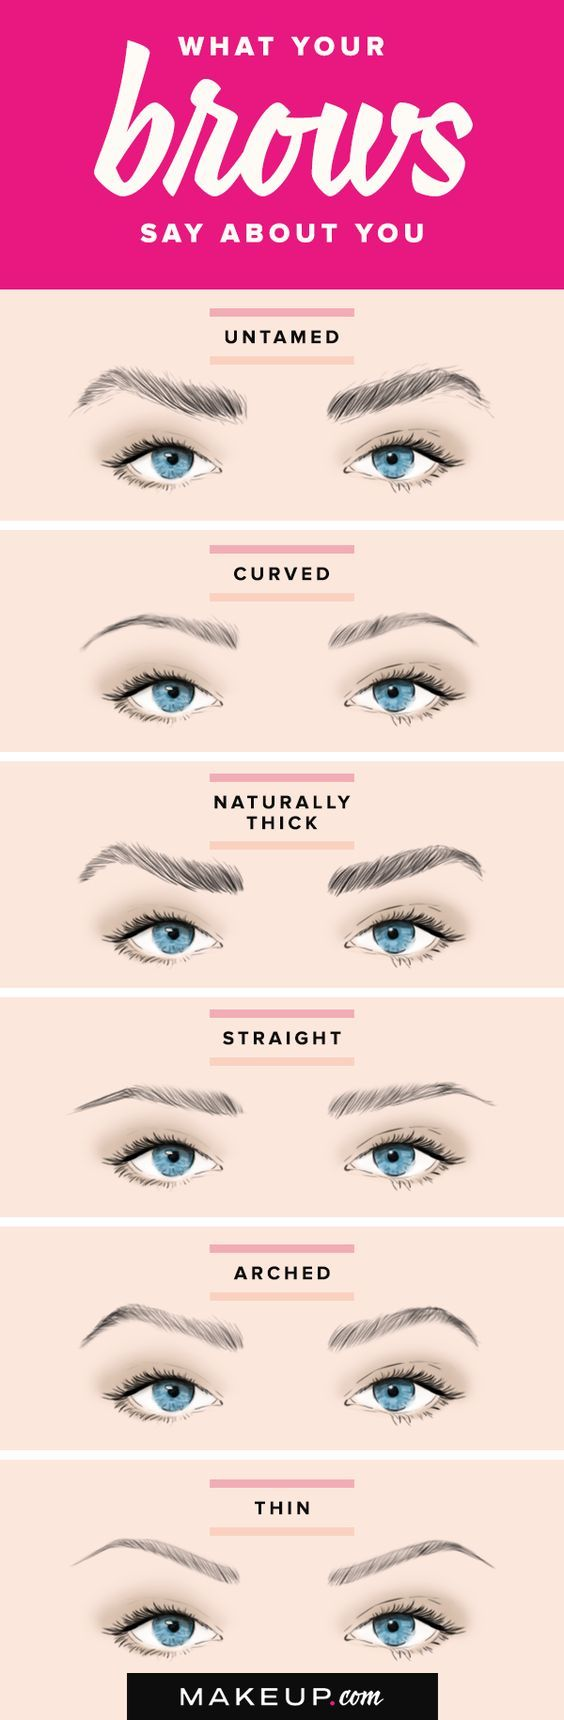 Your eyebrows say more about you than you think they do. Here's our guide for out what you're preferred eyebrow shape really means.